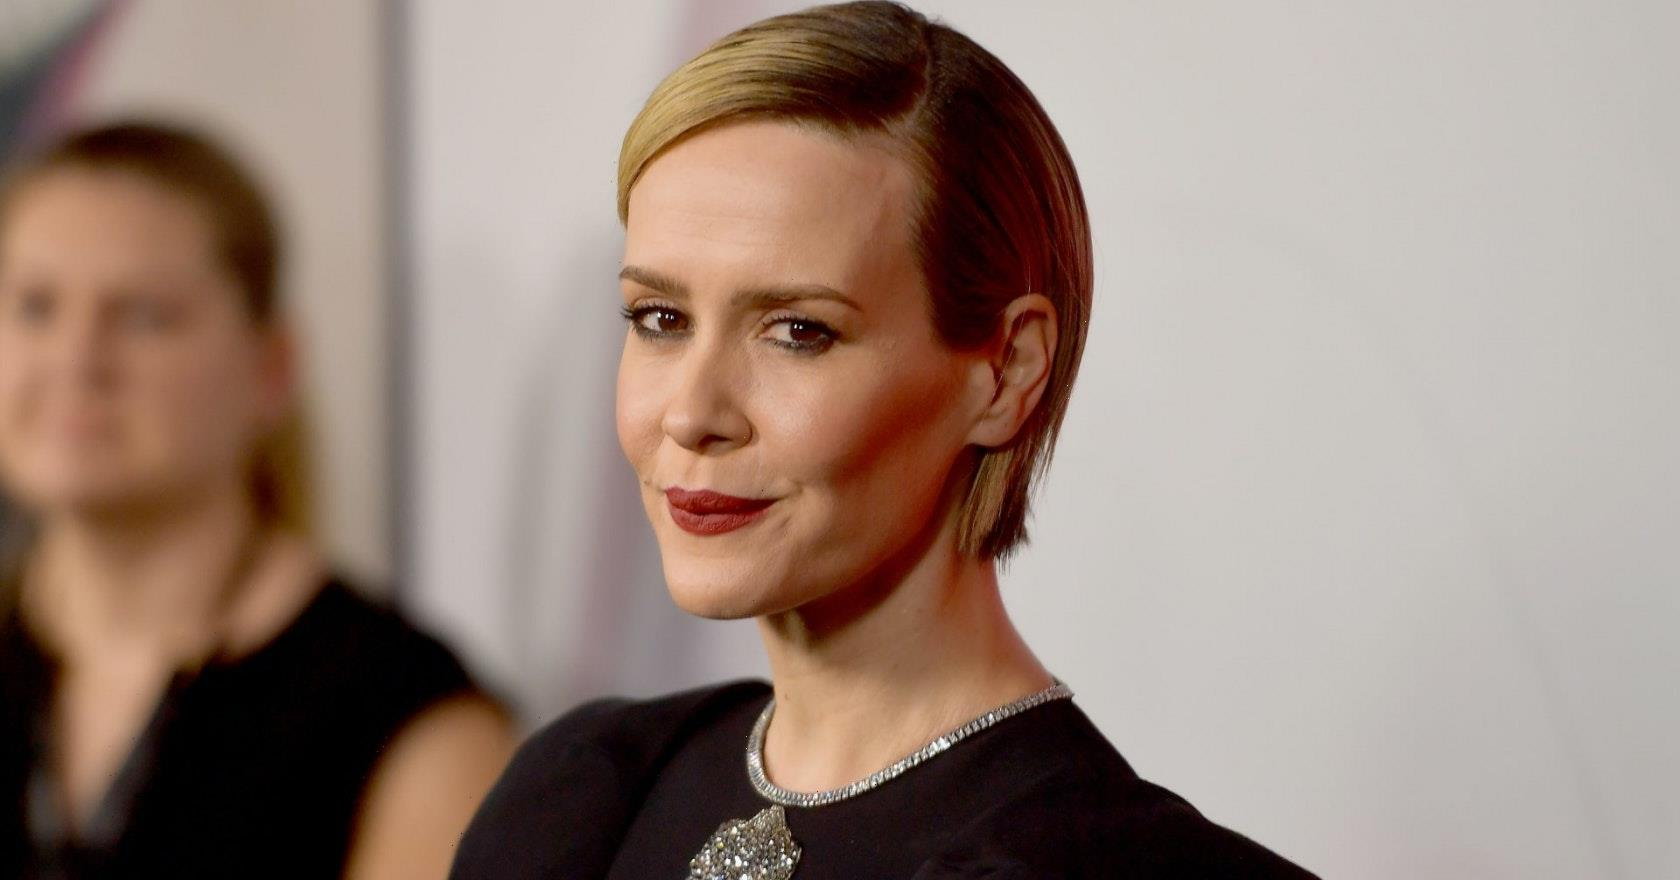 Sarah Paulson gives her best performance yet in this twisted new trailer